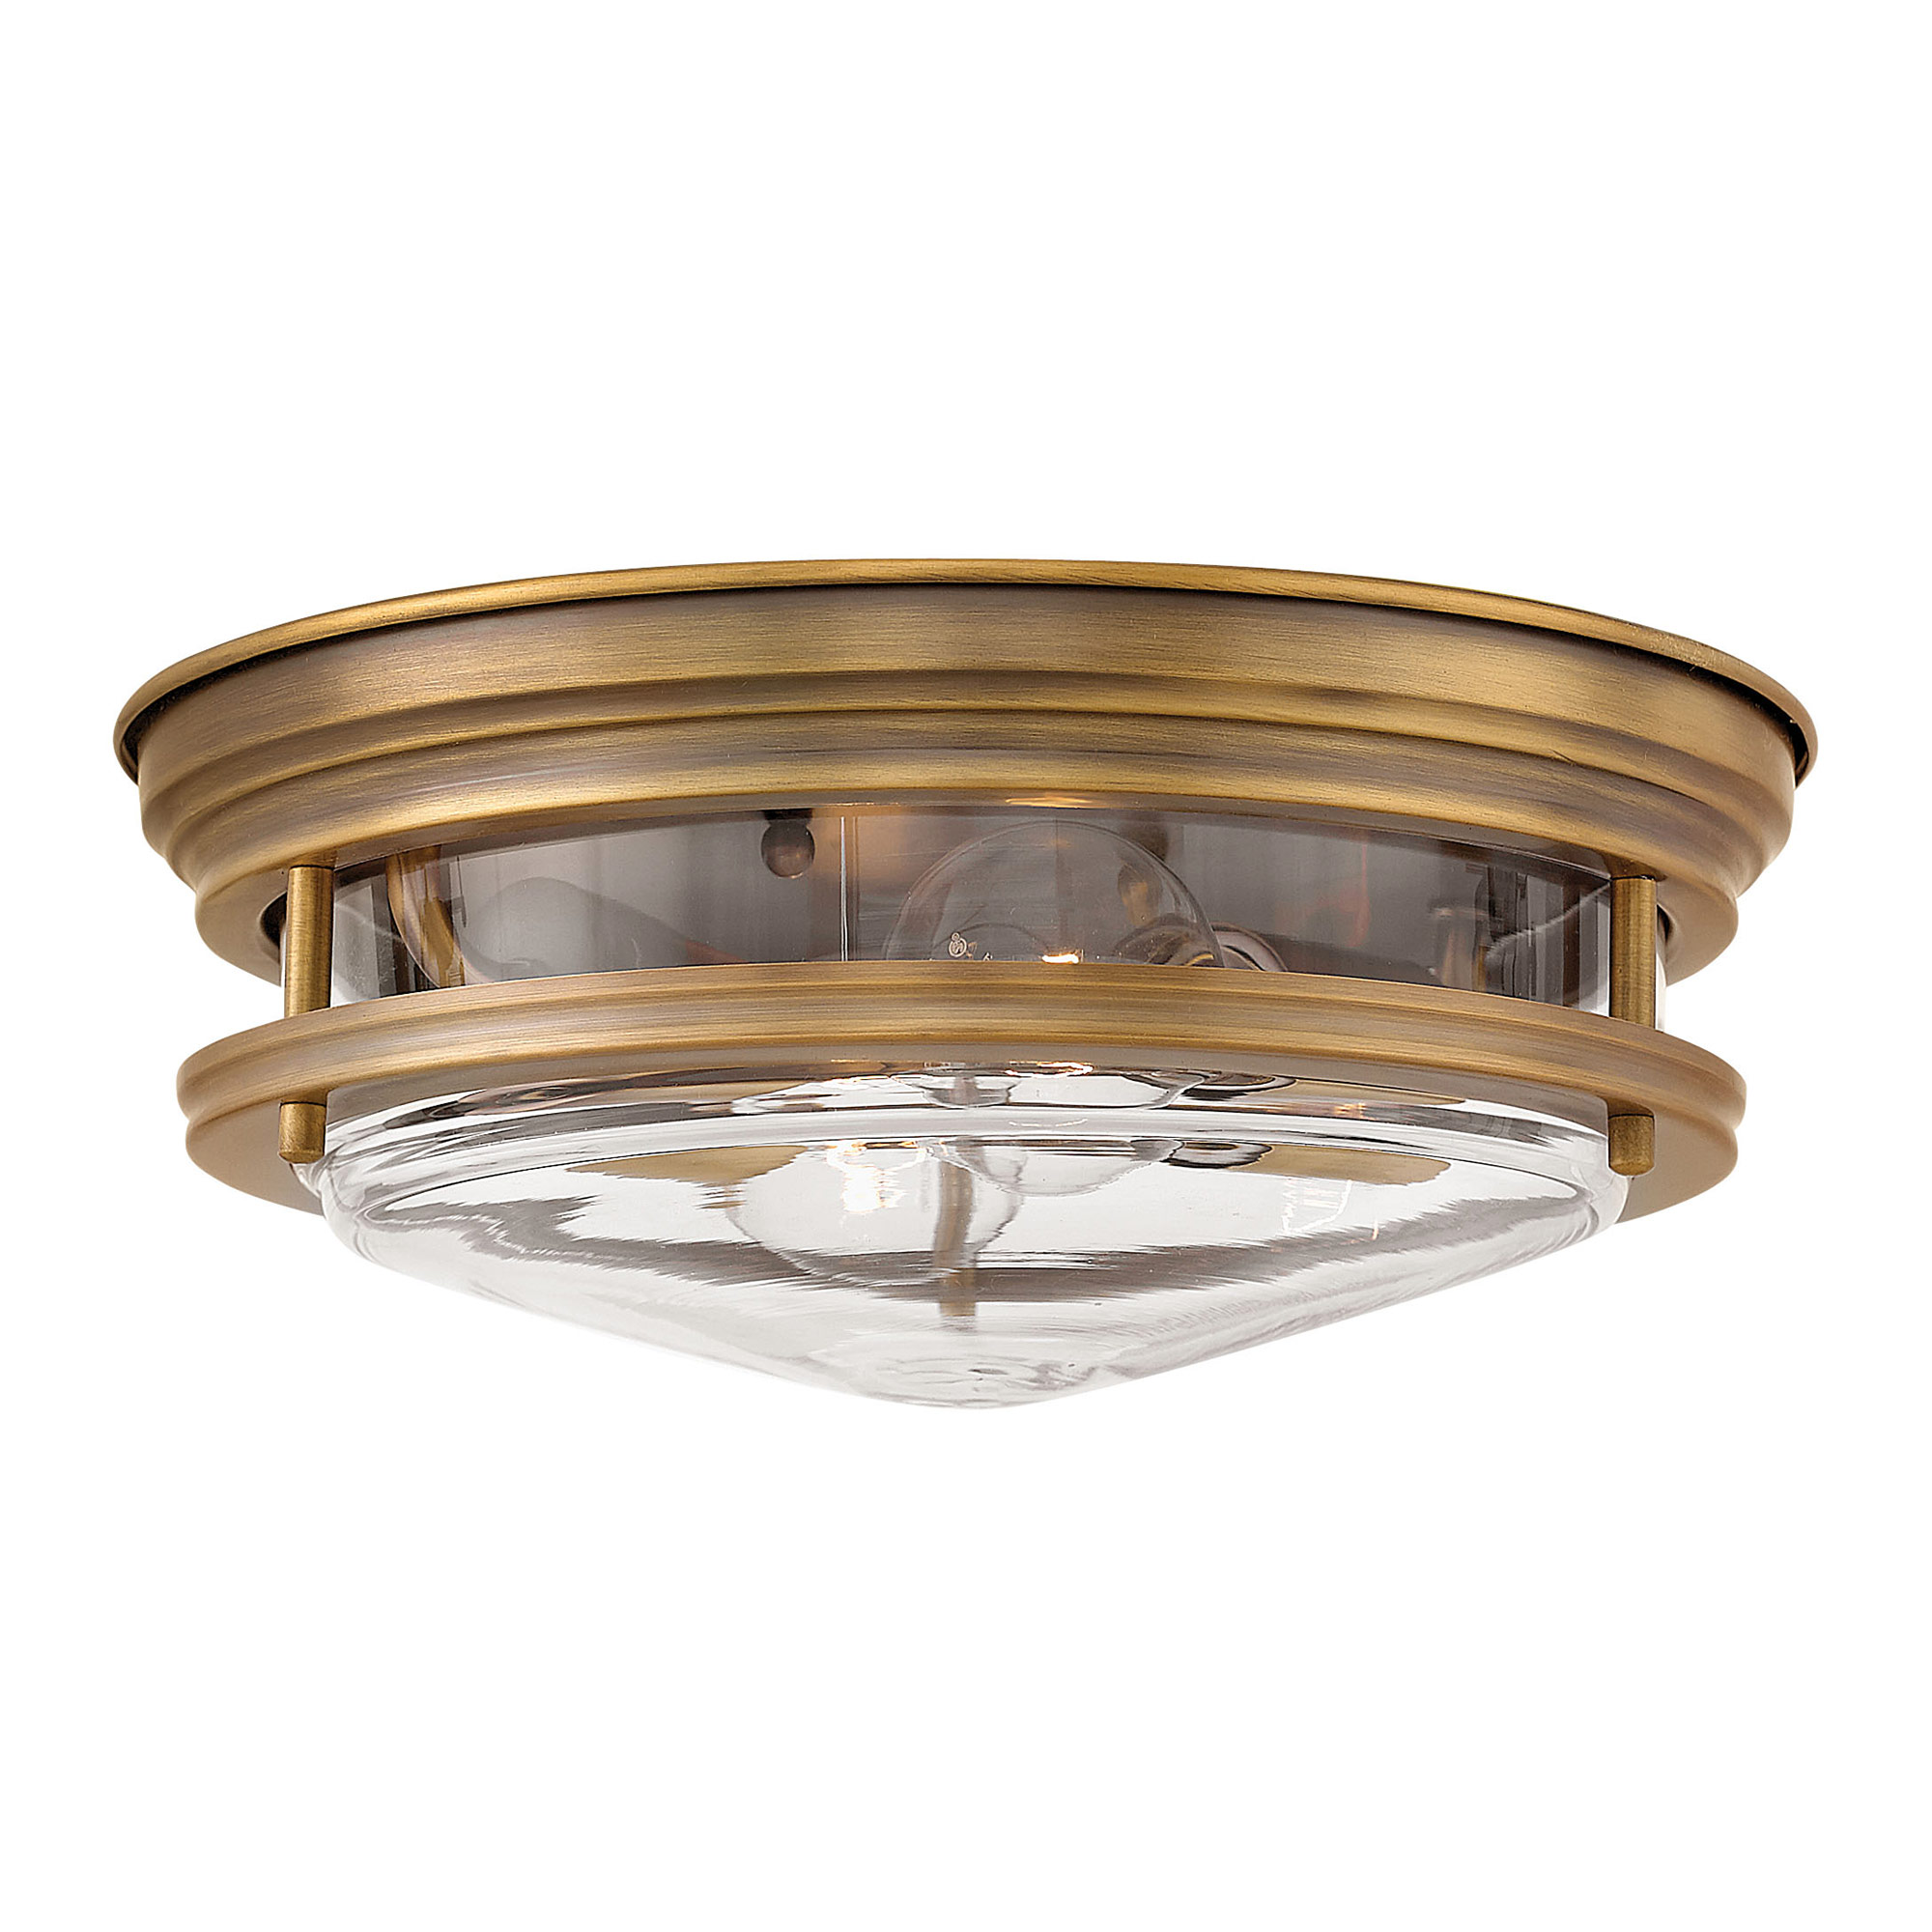 Hadley Clear Glass Ceiling Light Fixture by Hinkley Lighting | 3302BR-CL